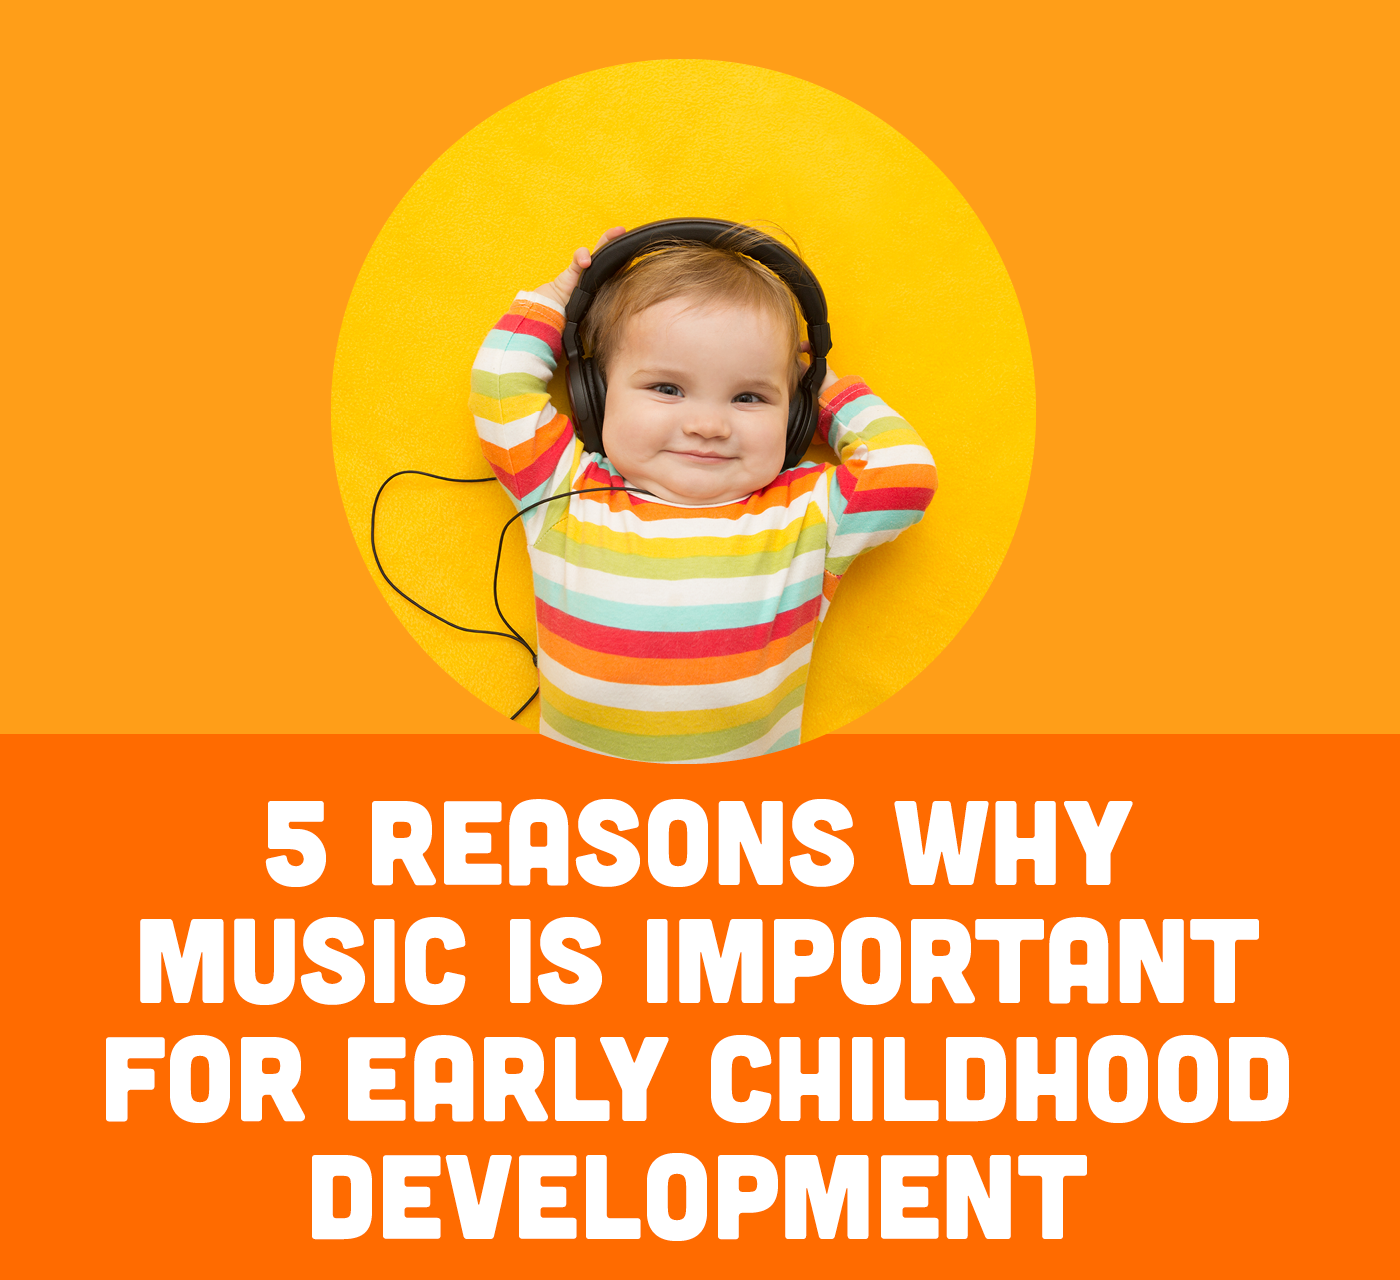 5 Reasons Music is Important for Early Childhood Development